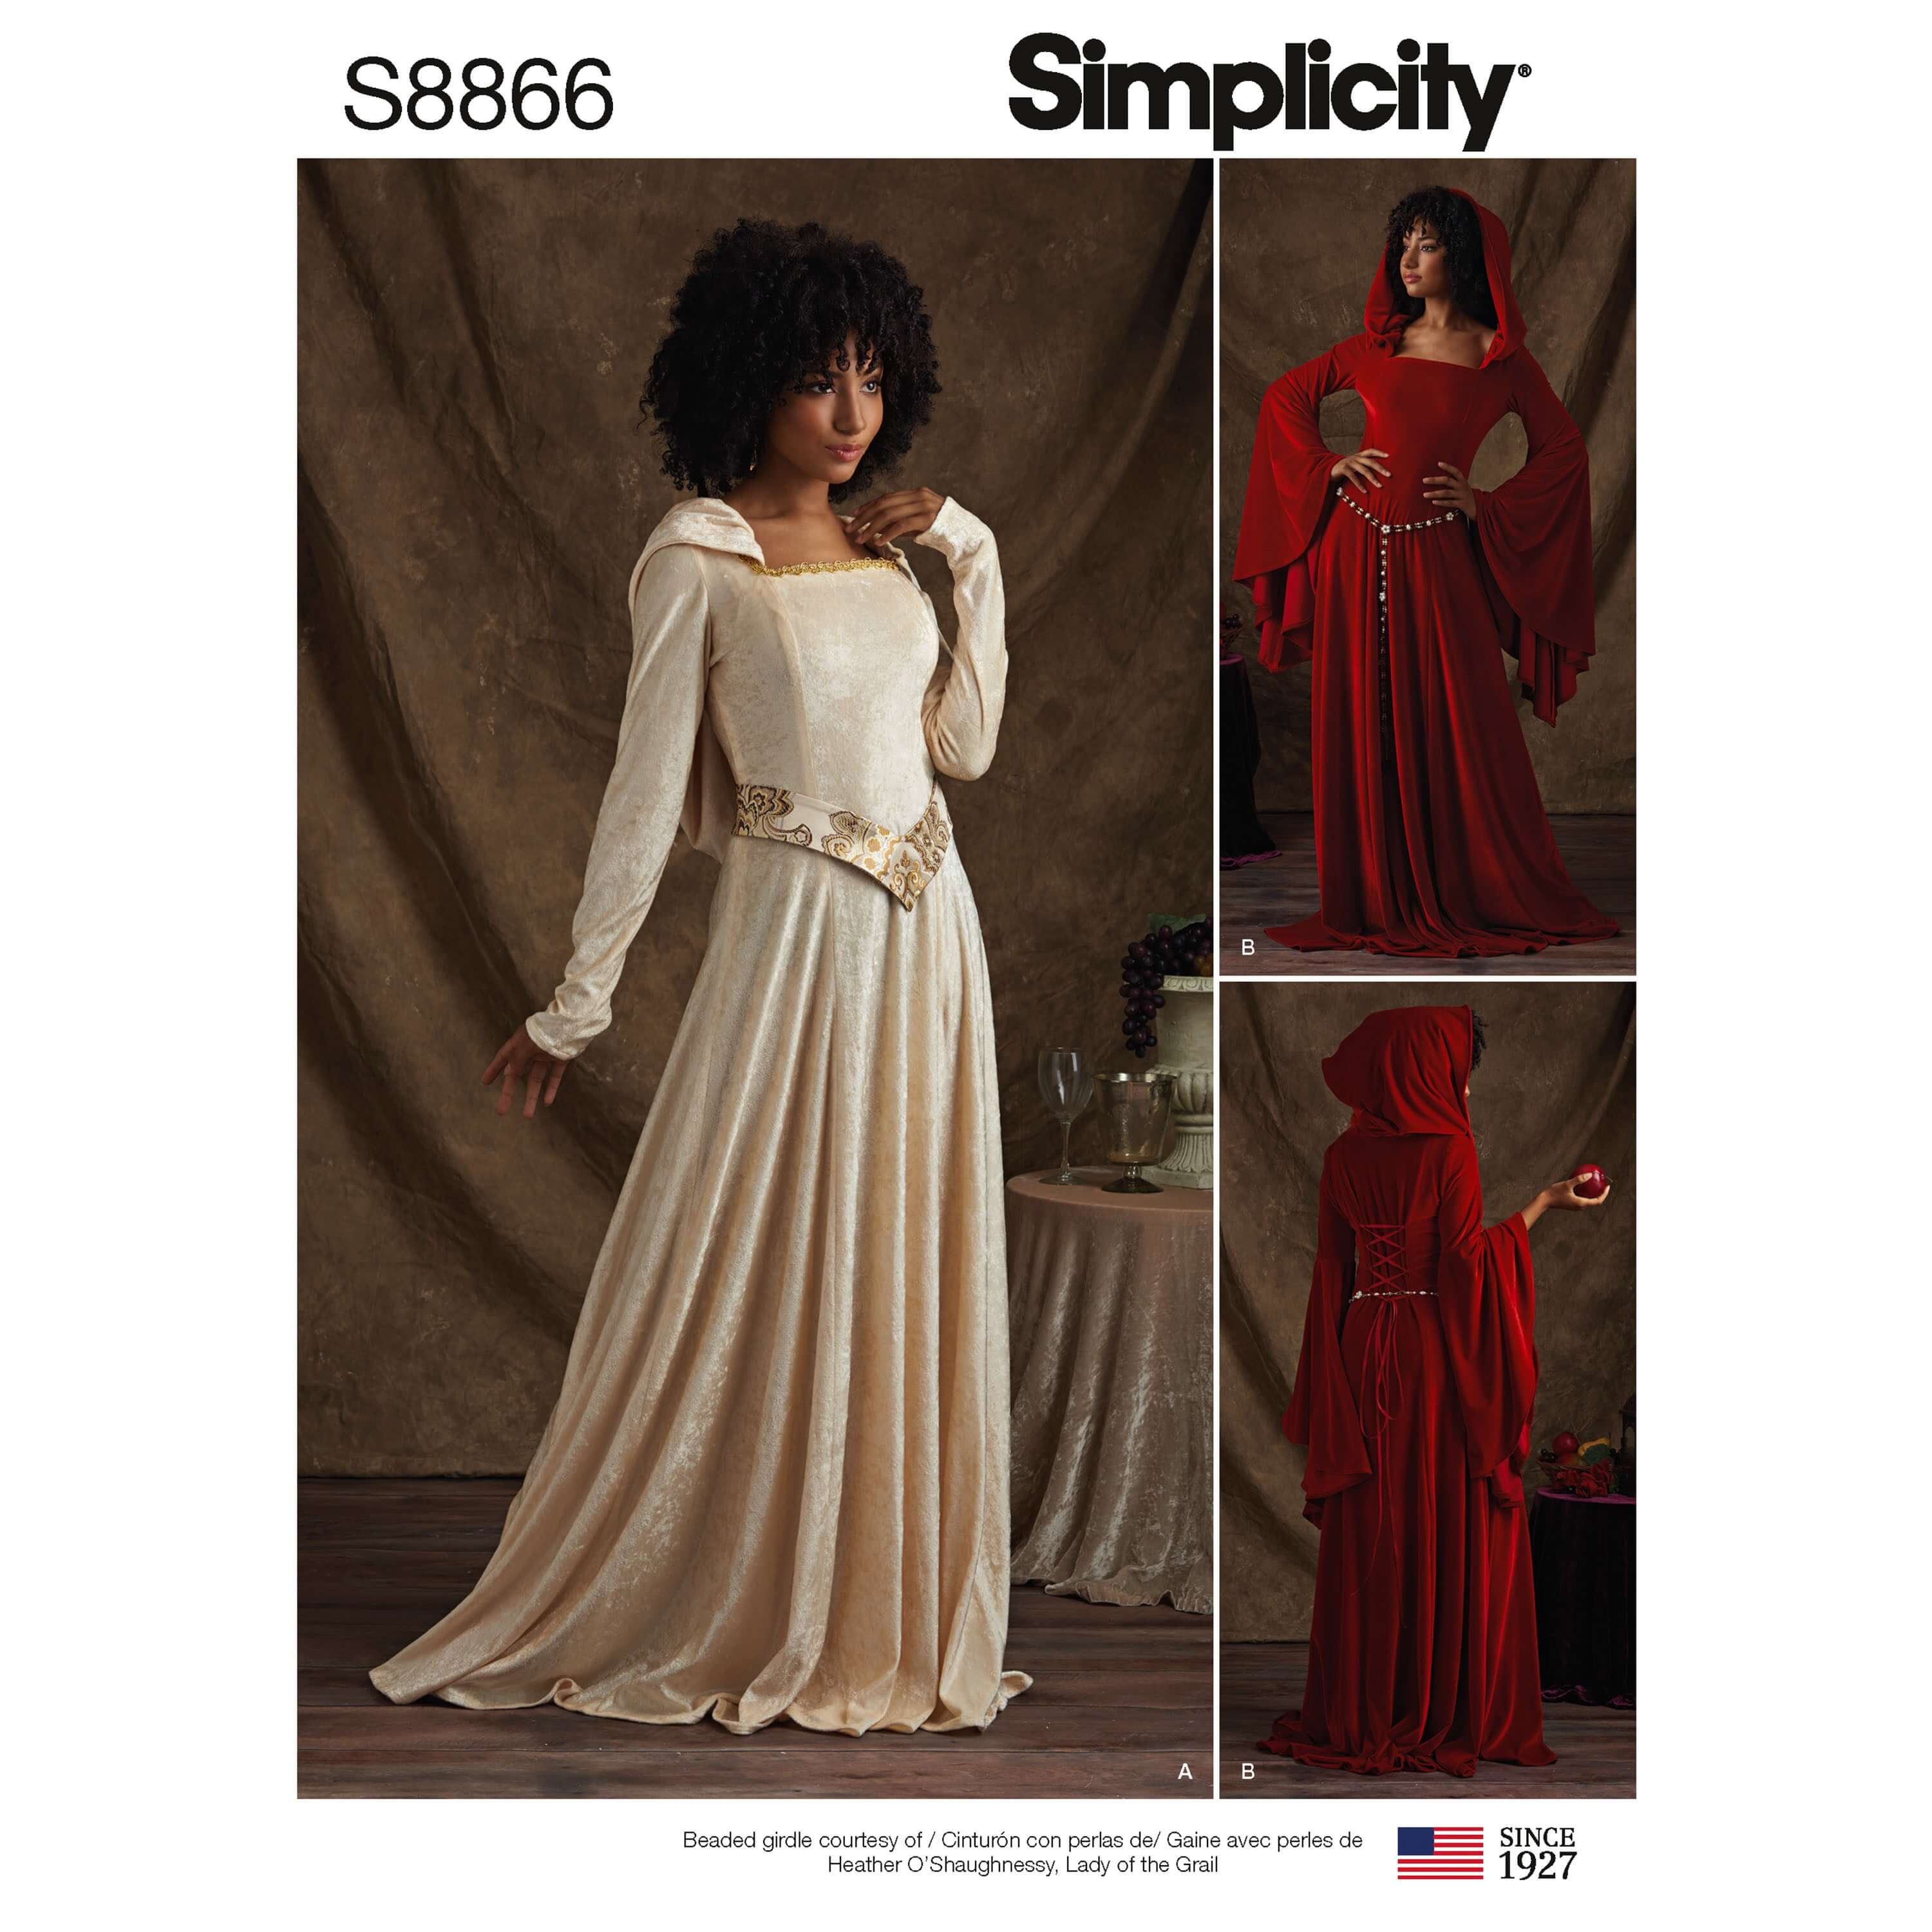 Simplicity Sewing Pattern 8866 Misses Cosplay Knit Costume Dresses